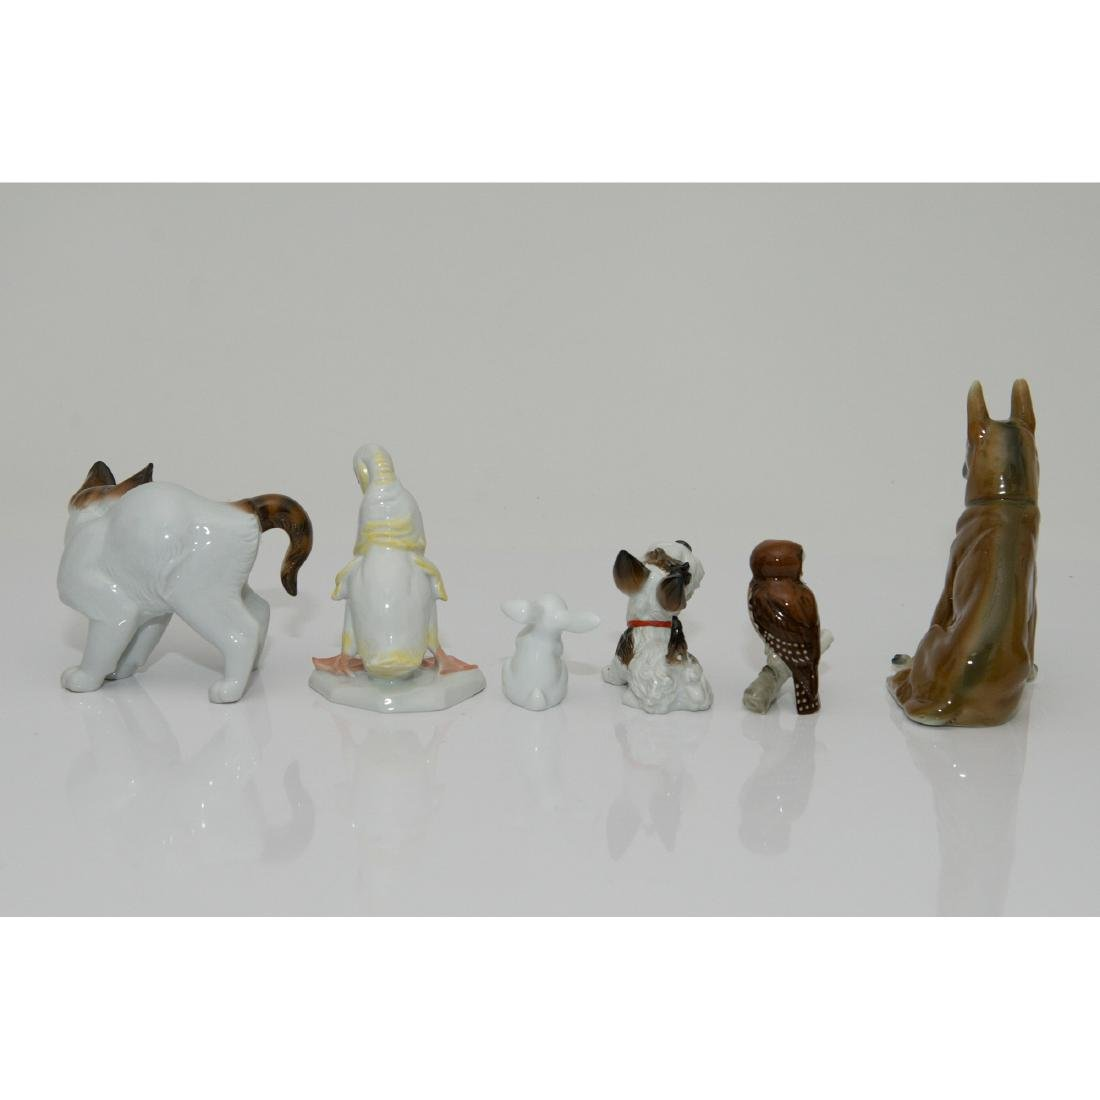 GROUP OF 6 ROSENTHAL HUTSCHENREUTHER ANIMALS - 2